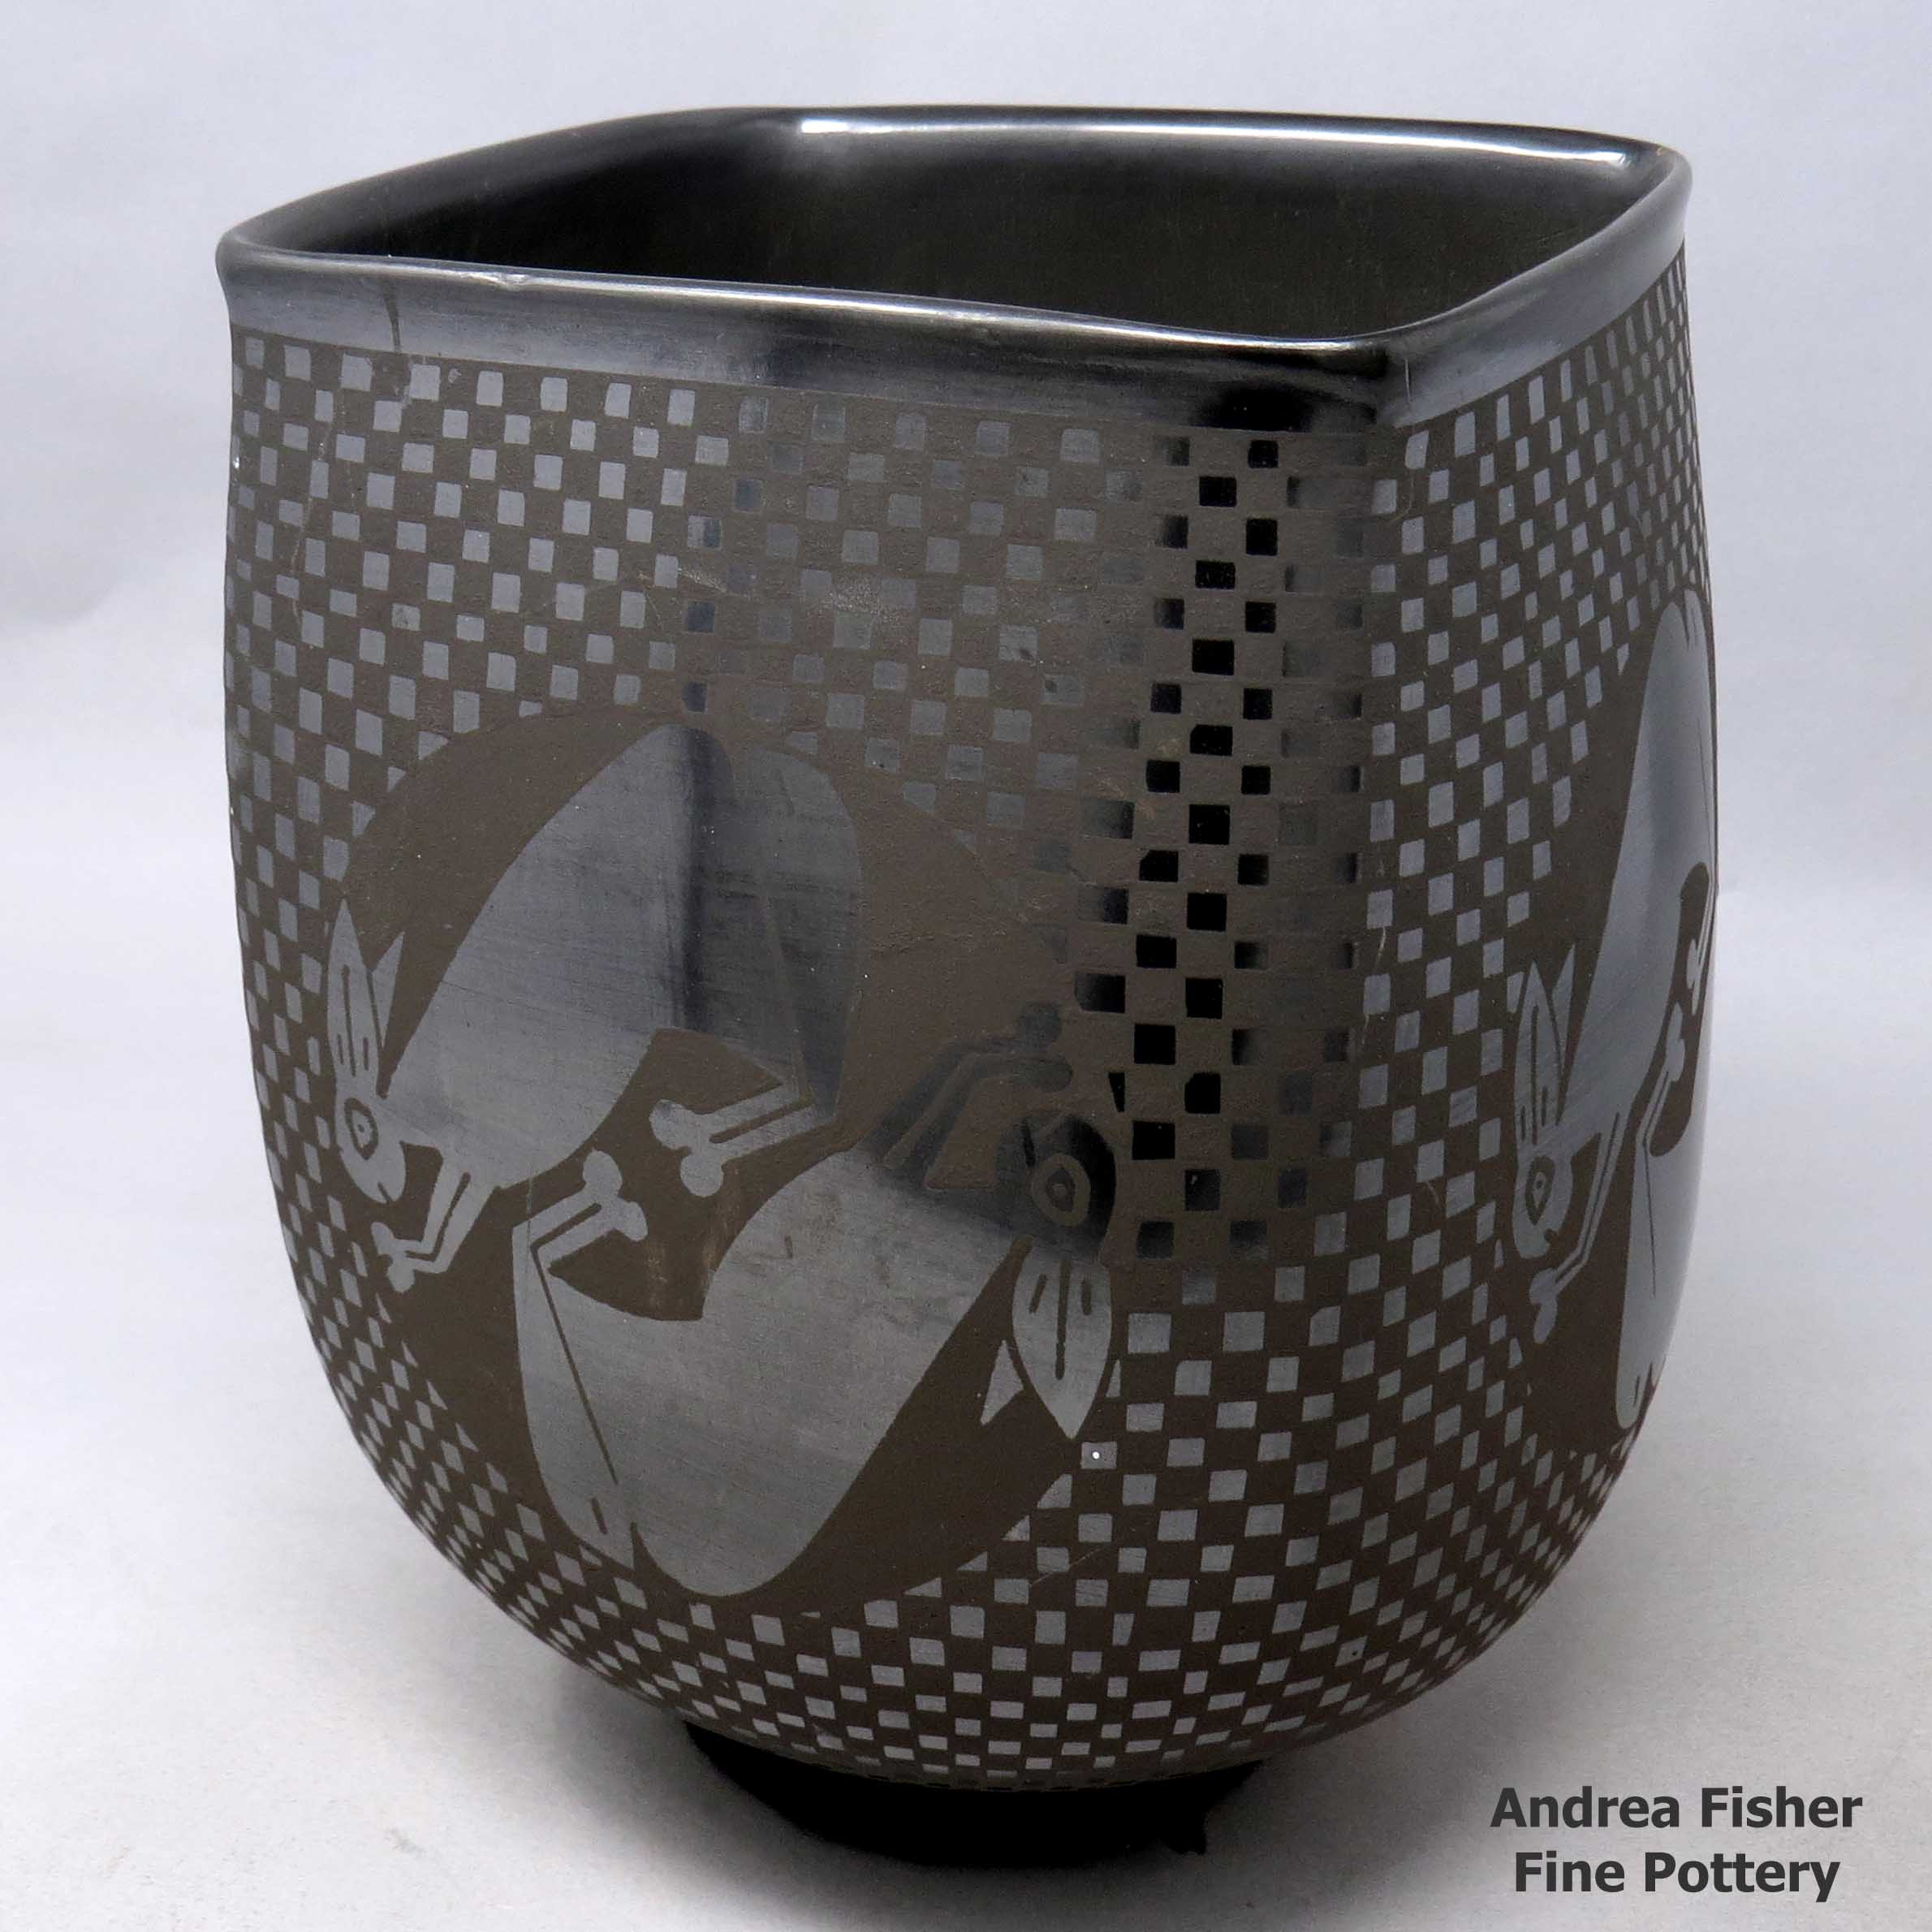 Squarish black on black jar with rabbit medallions and quadrillos design  made by Macario Ortiz of Mata Ortiz and Casas Grandes